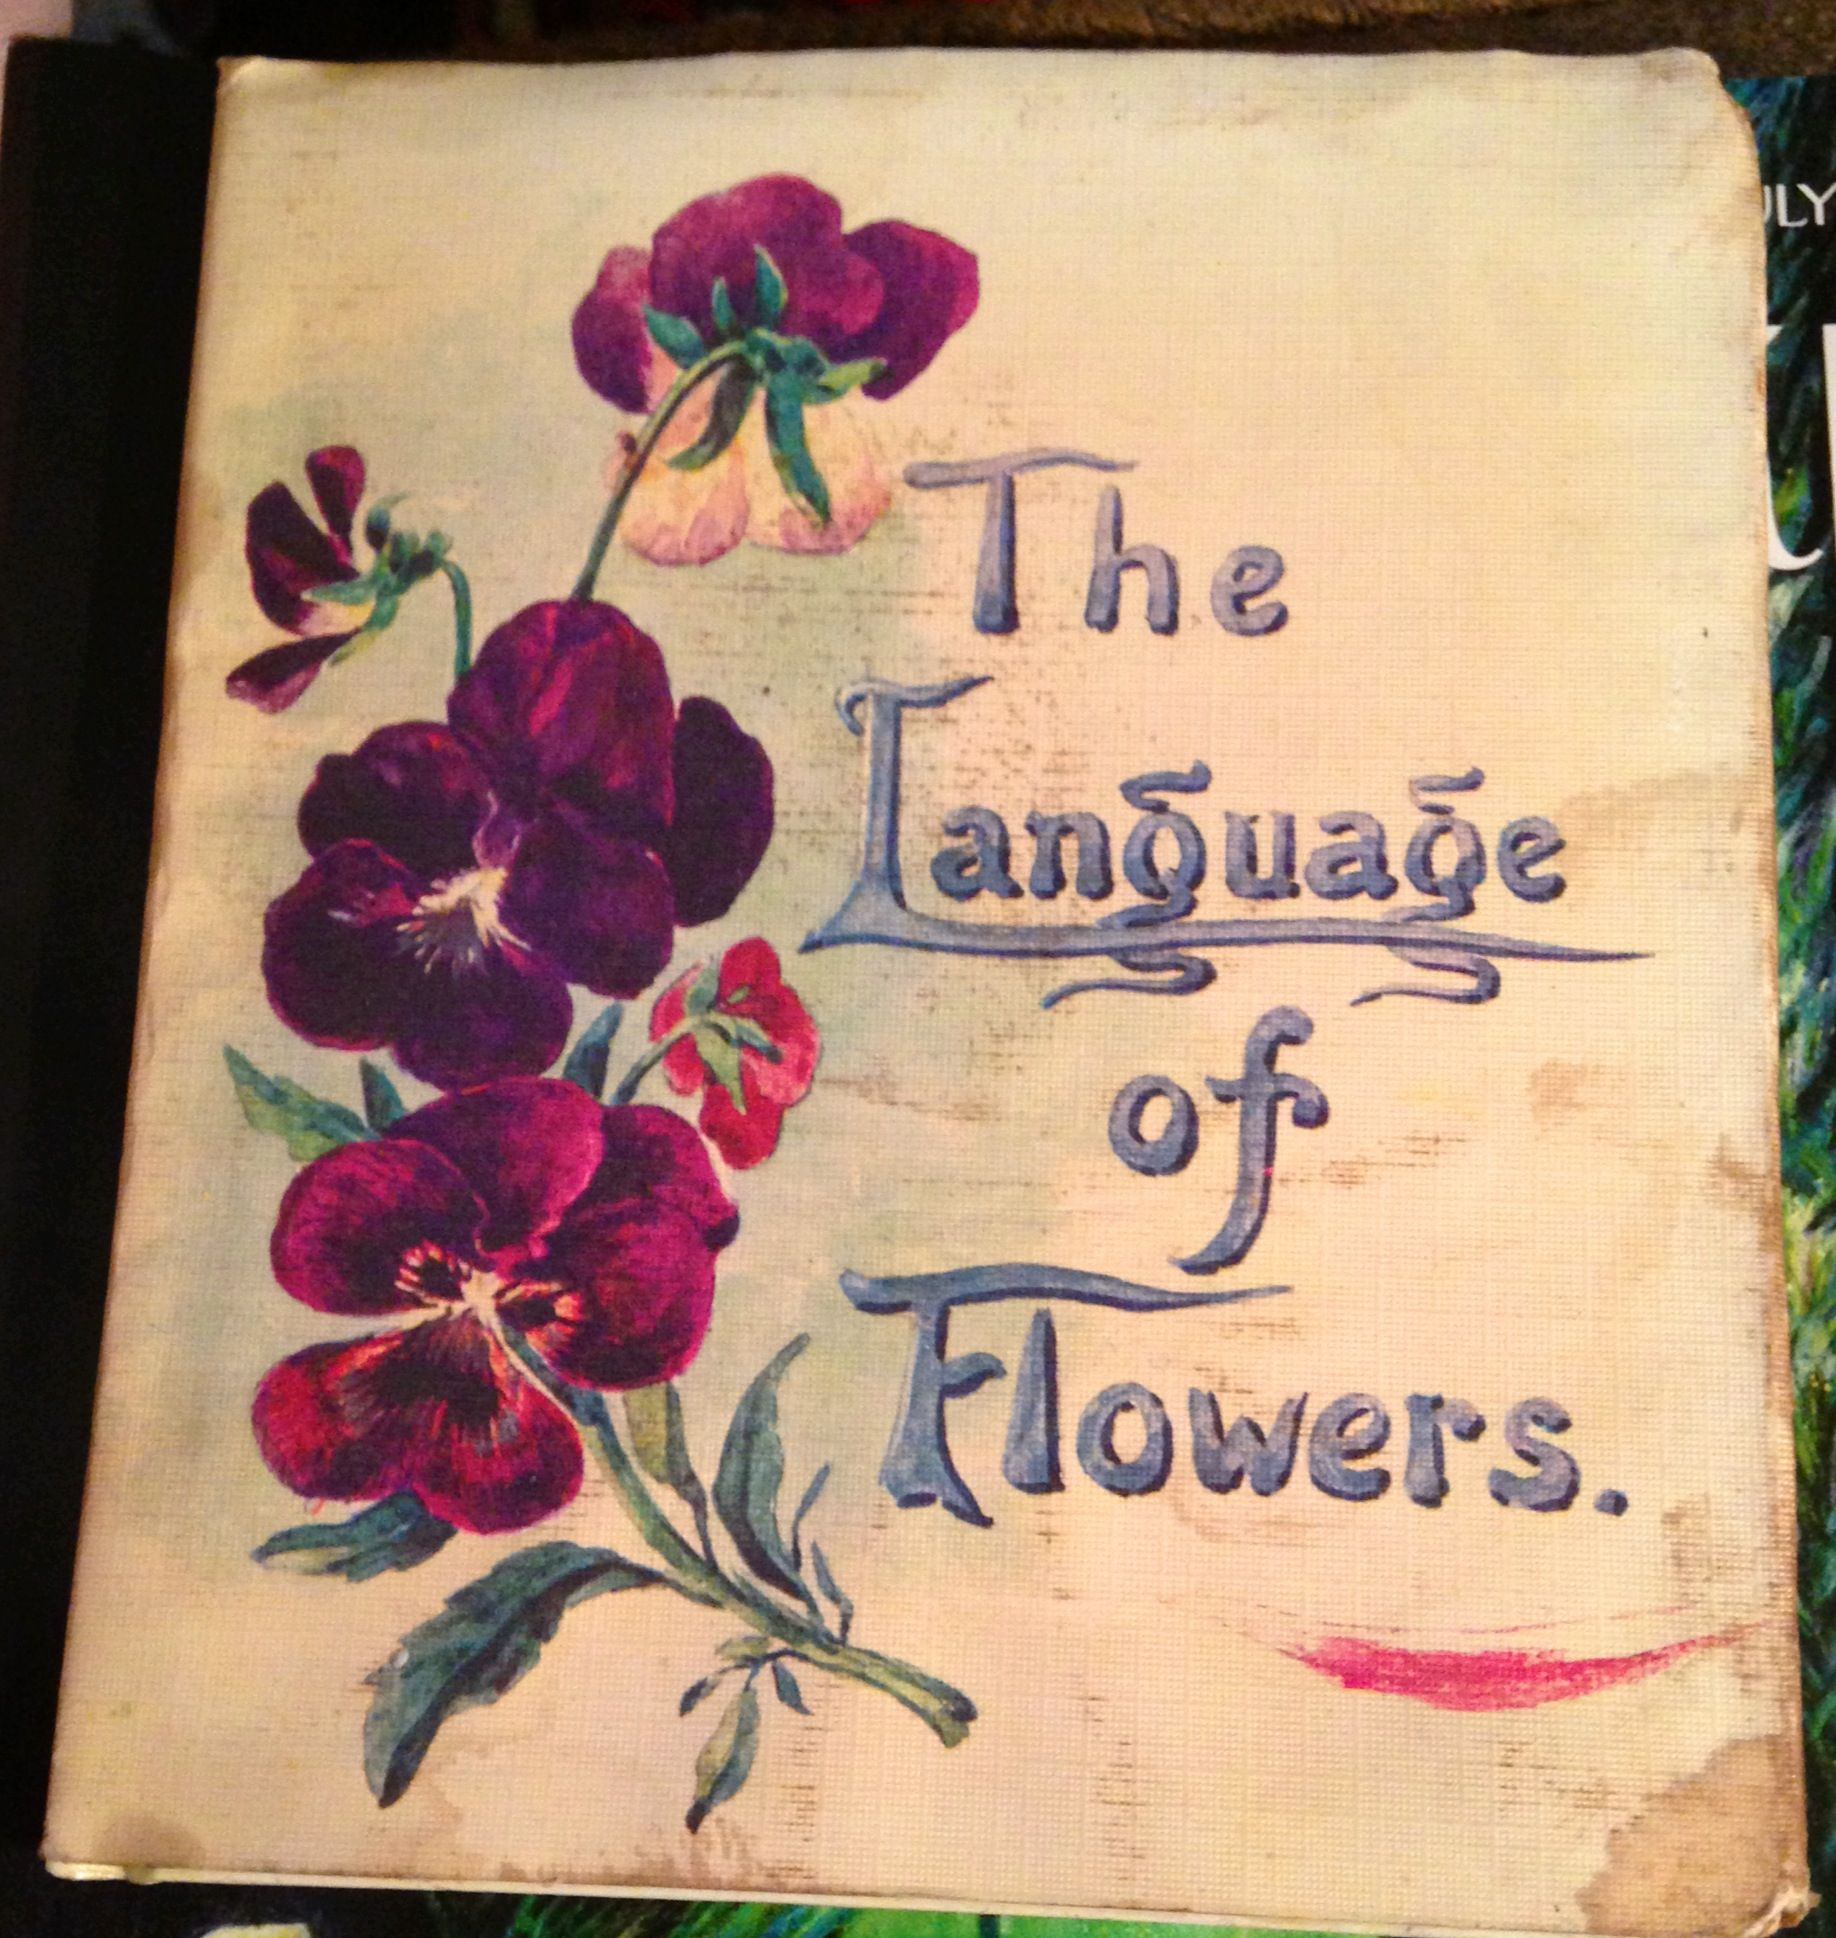 One Of Many Versions Book Of Flowers And Their Meanings Book Art Flower Meanings Language Of Flowers